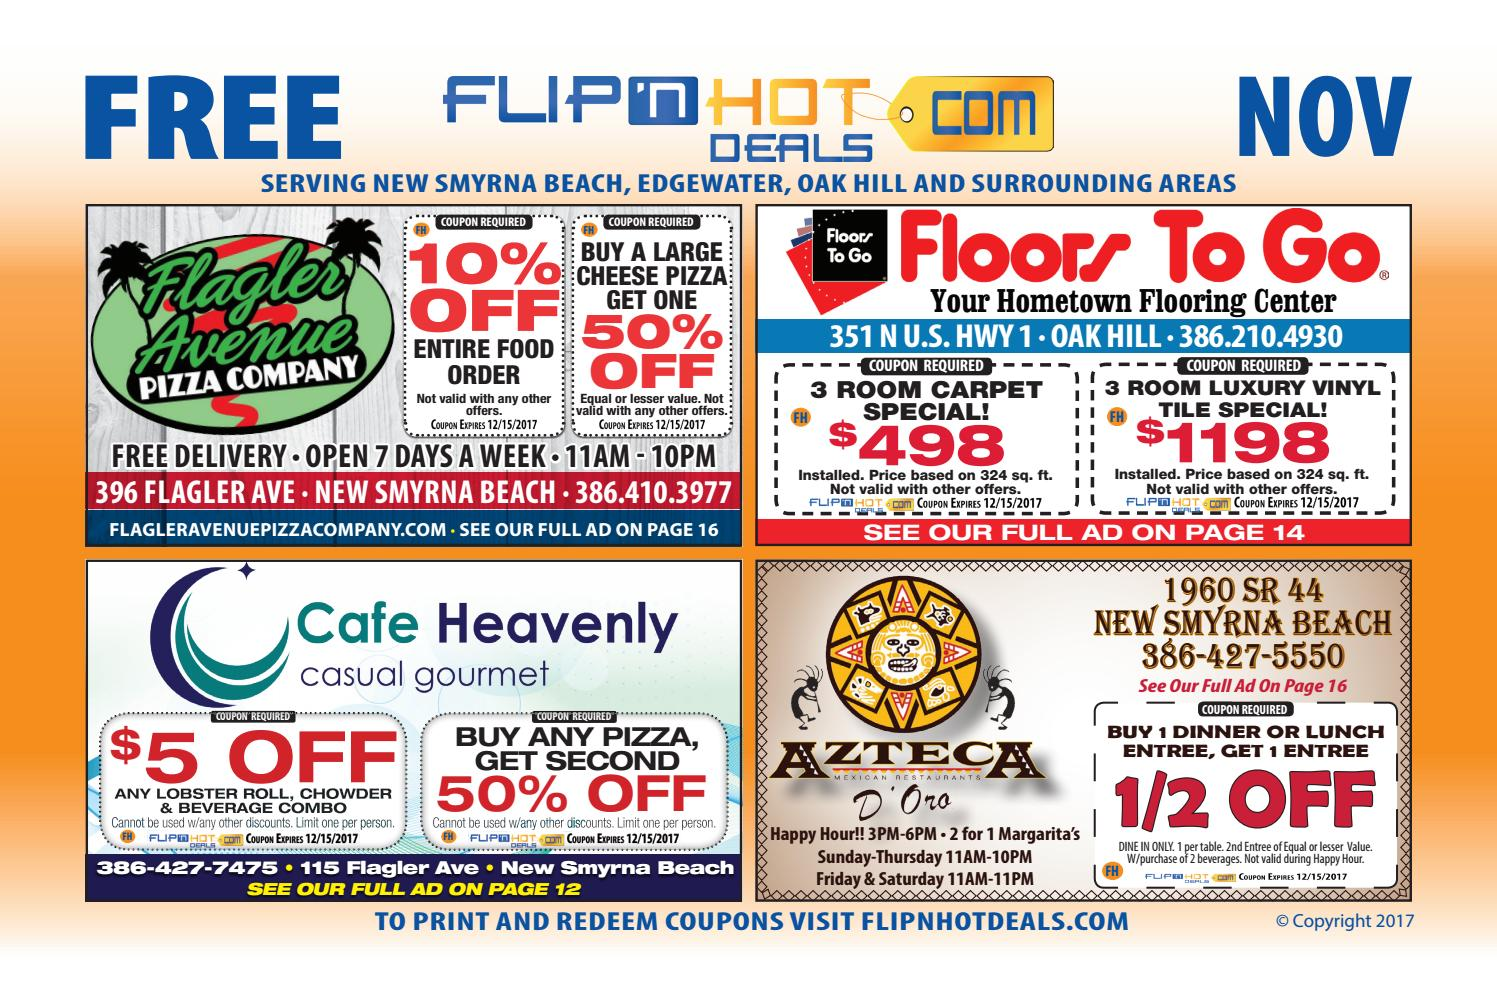 Flipnhot Deals Coupon Book November  New Smyrna Beach Area By Flipnhot Deals Issuu